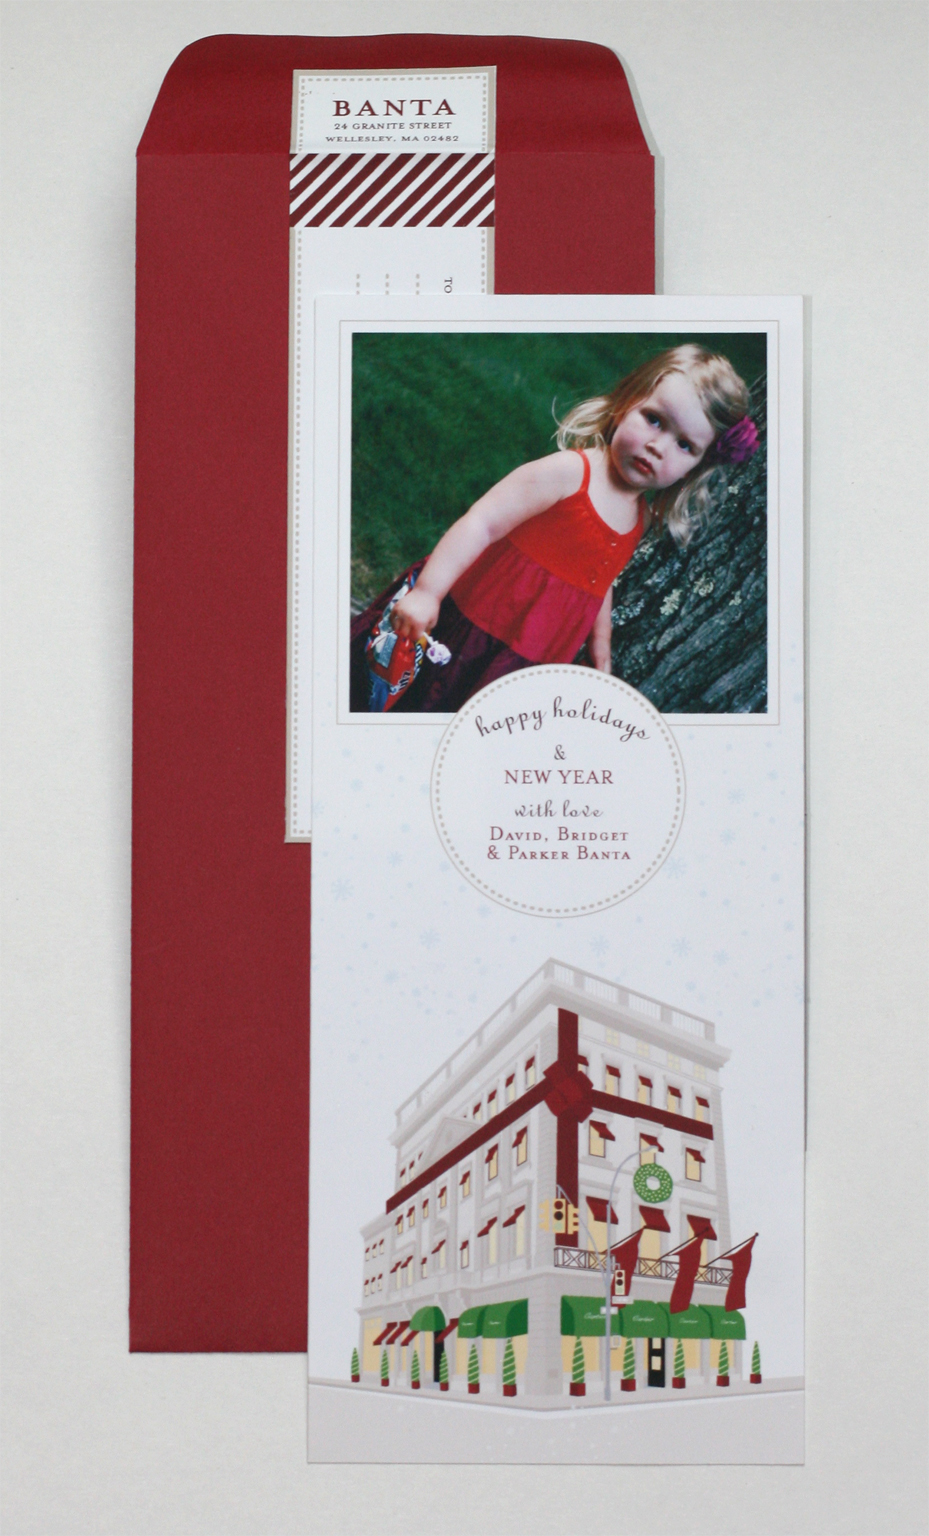 cartier holiday lores.jpg